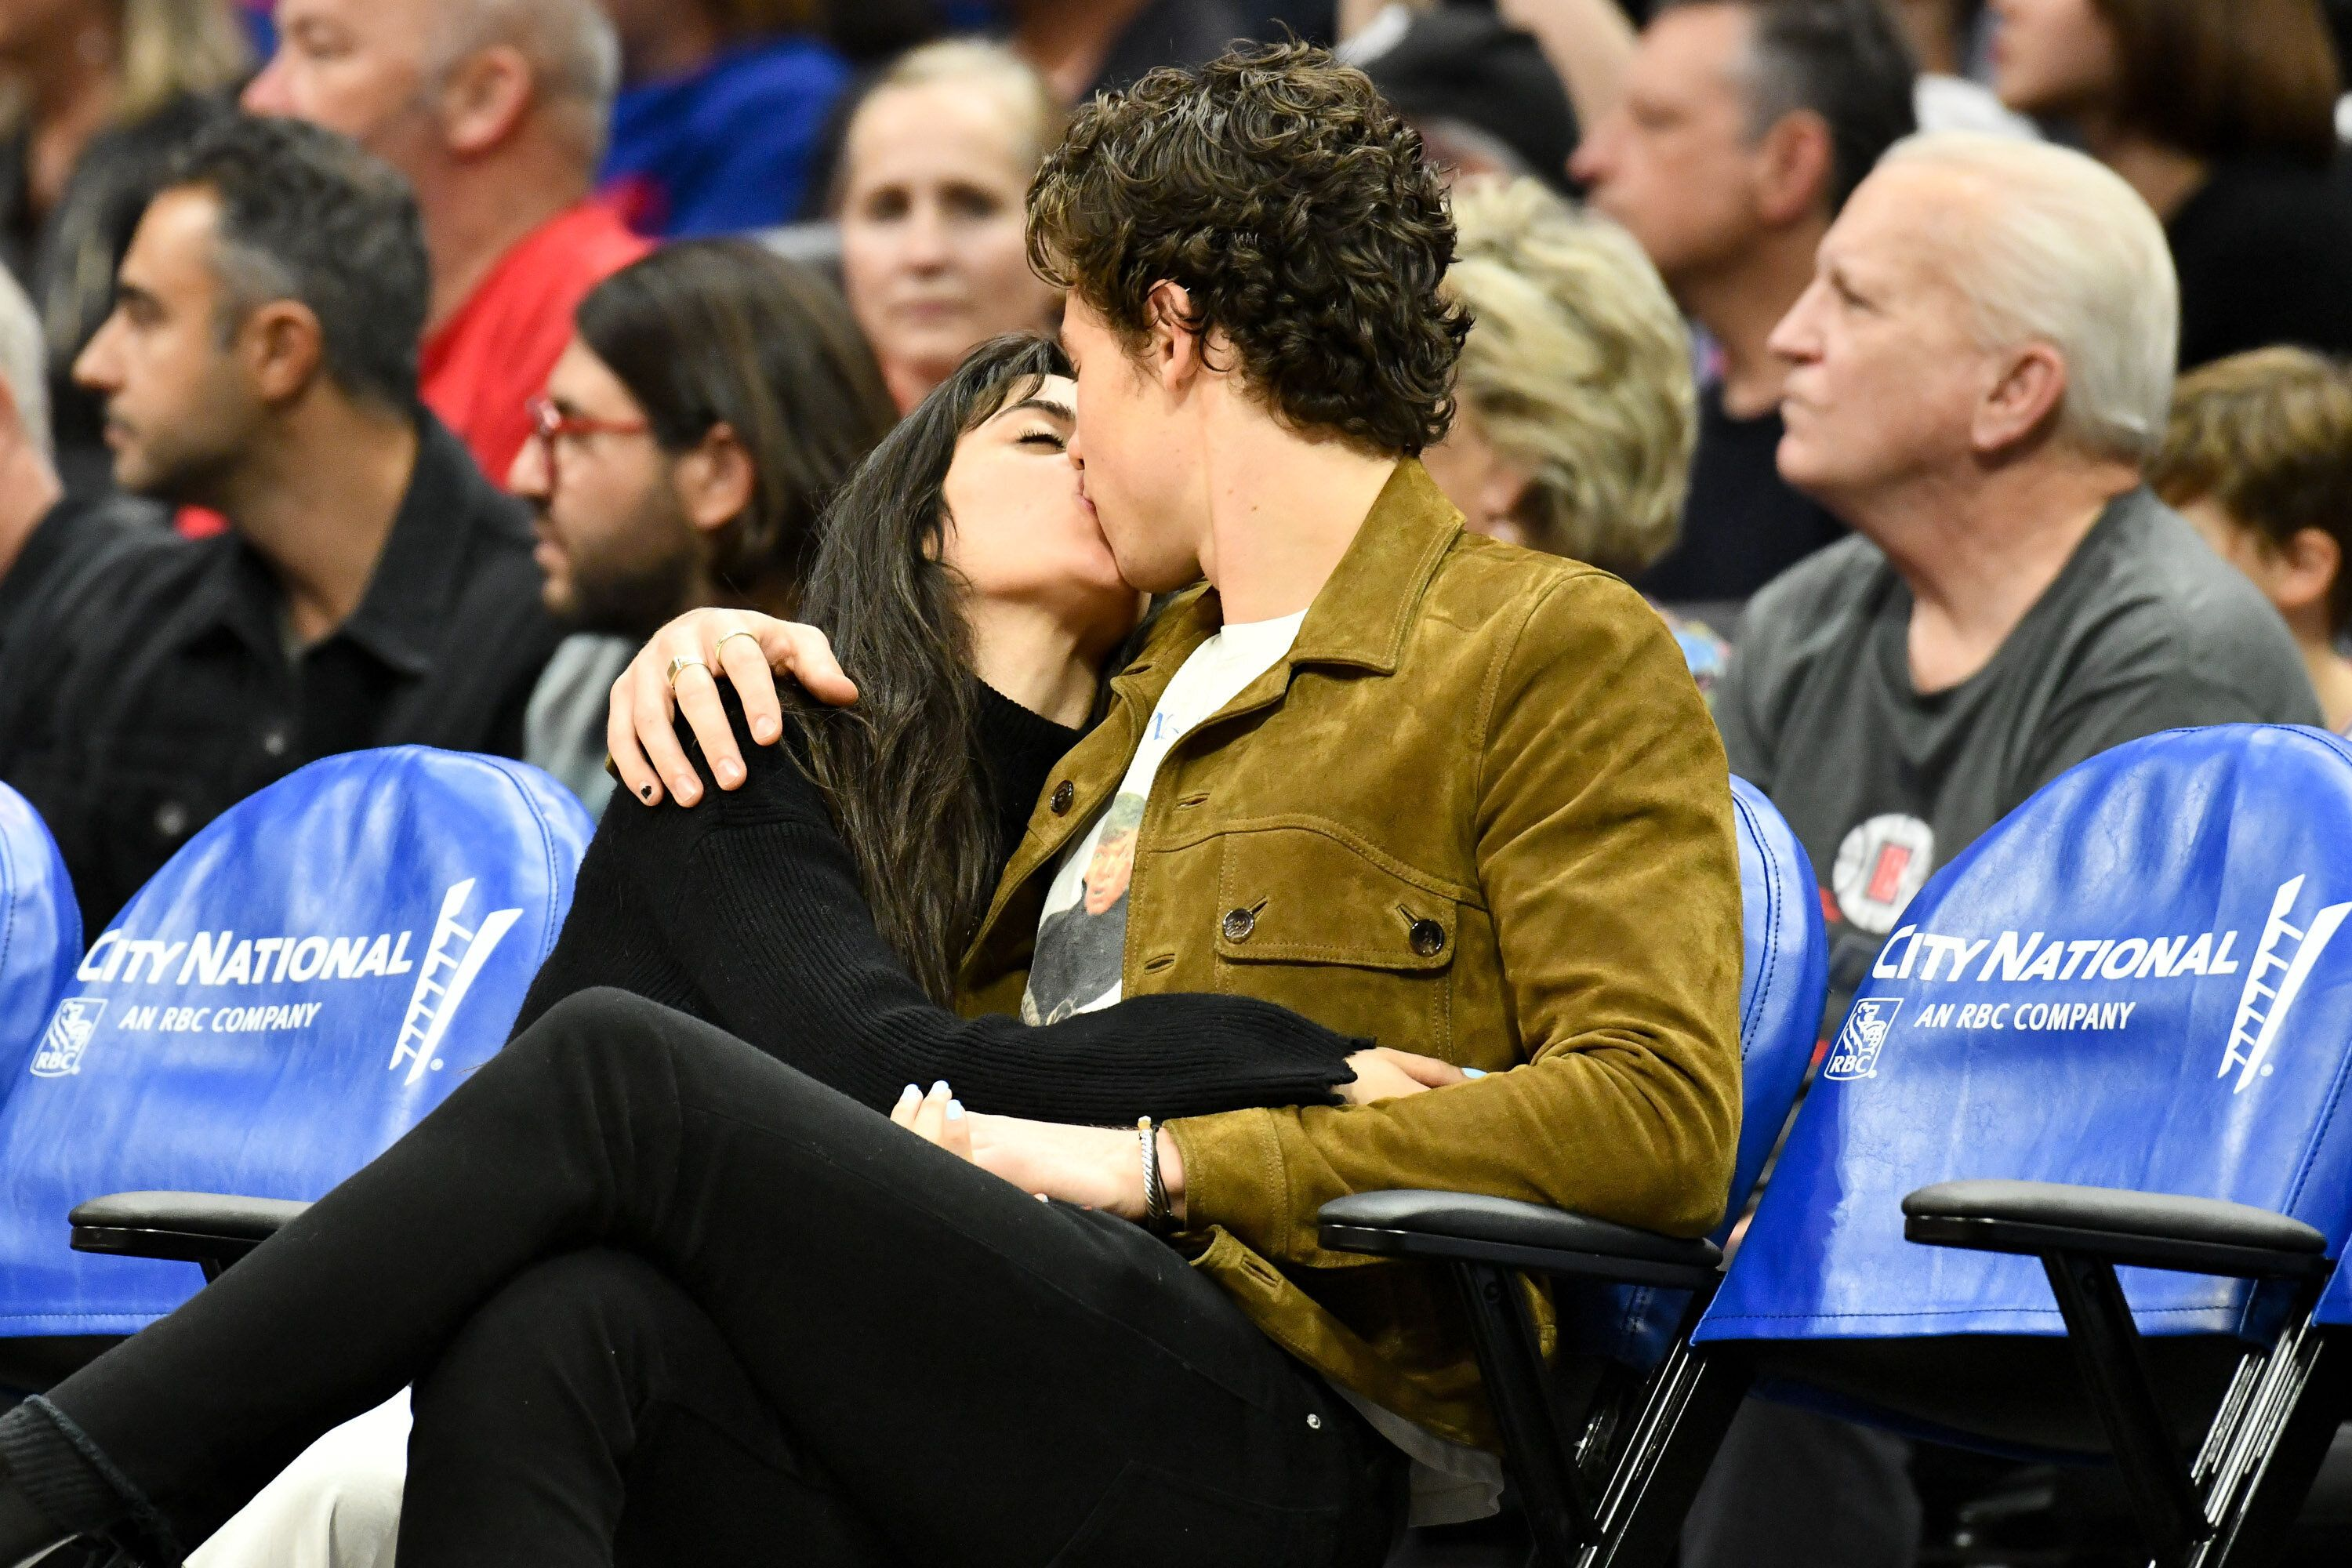 Shawn Mendes And Camila Cabello Make Out Like Crazy At Clippers Game